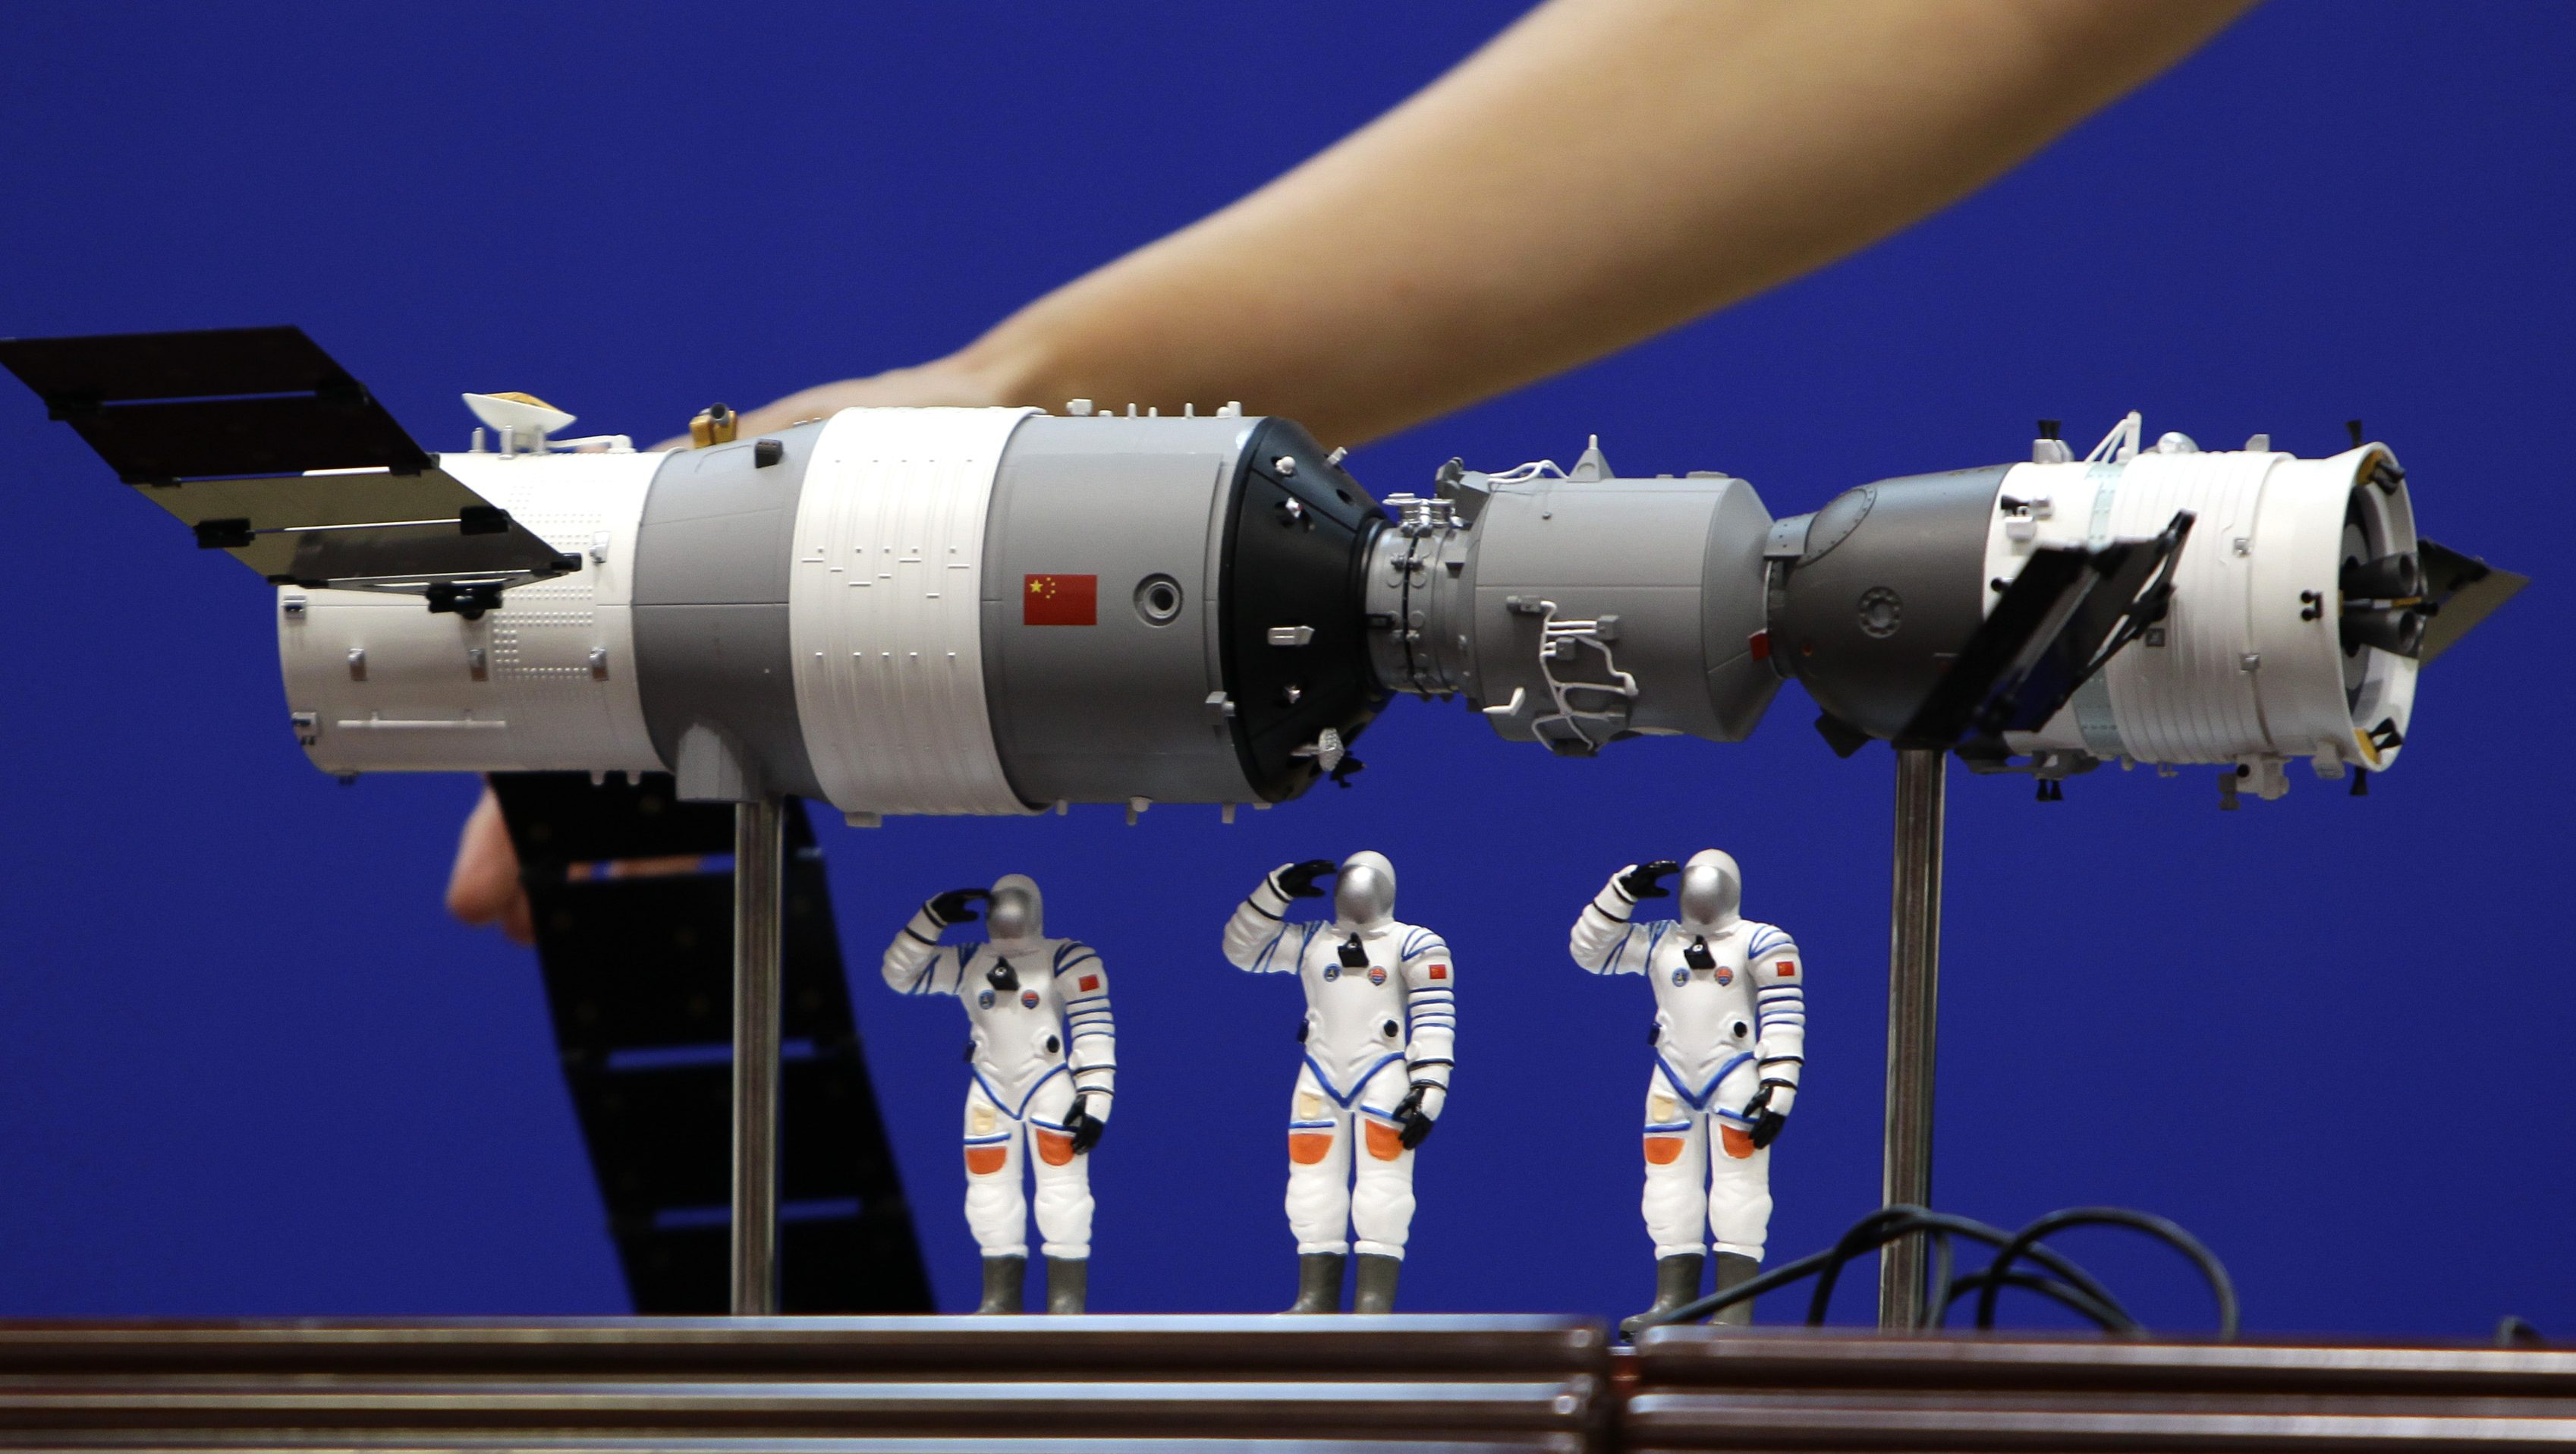 A model of the Shenzhou-9 manned spacecraft ( R) docking with the orbiting Tiangong-1 space lab module (L) and three Chinese astronauts is displayed during a news conference at Jiuquan Satellite Launch Center, in northwest China's Gansu province, June 15, 2012. The Shenzhou-9 manned spacecraft will be launched at 18:37 (10:37 GMT) on June 16, 2012, according to a decision made by China's manned space docking program headquarters, Xinhua News Agency reported.